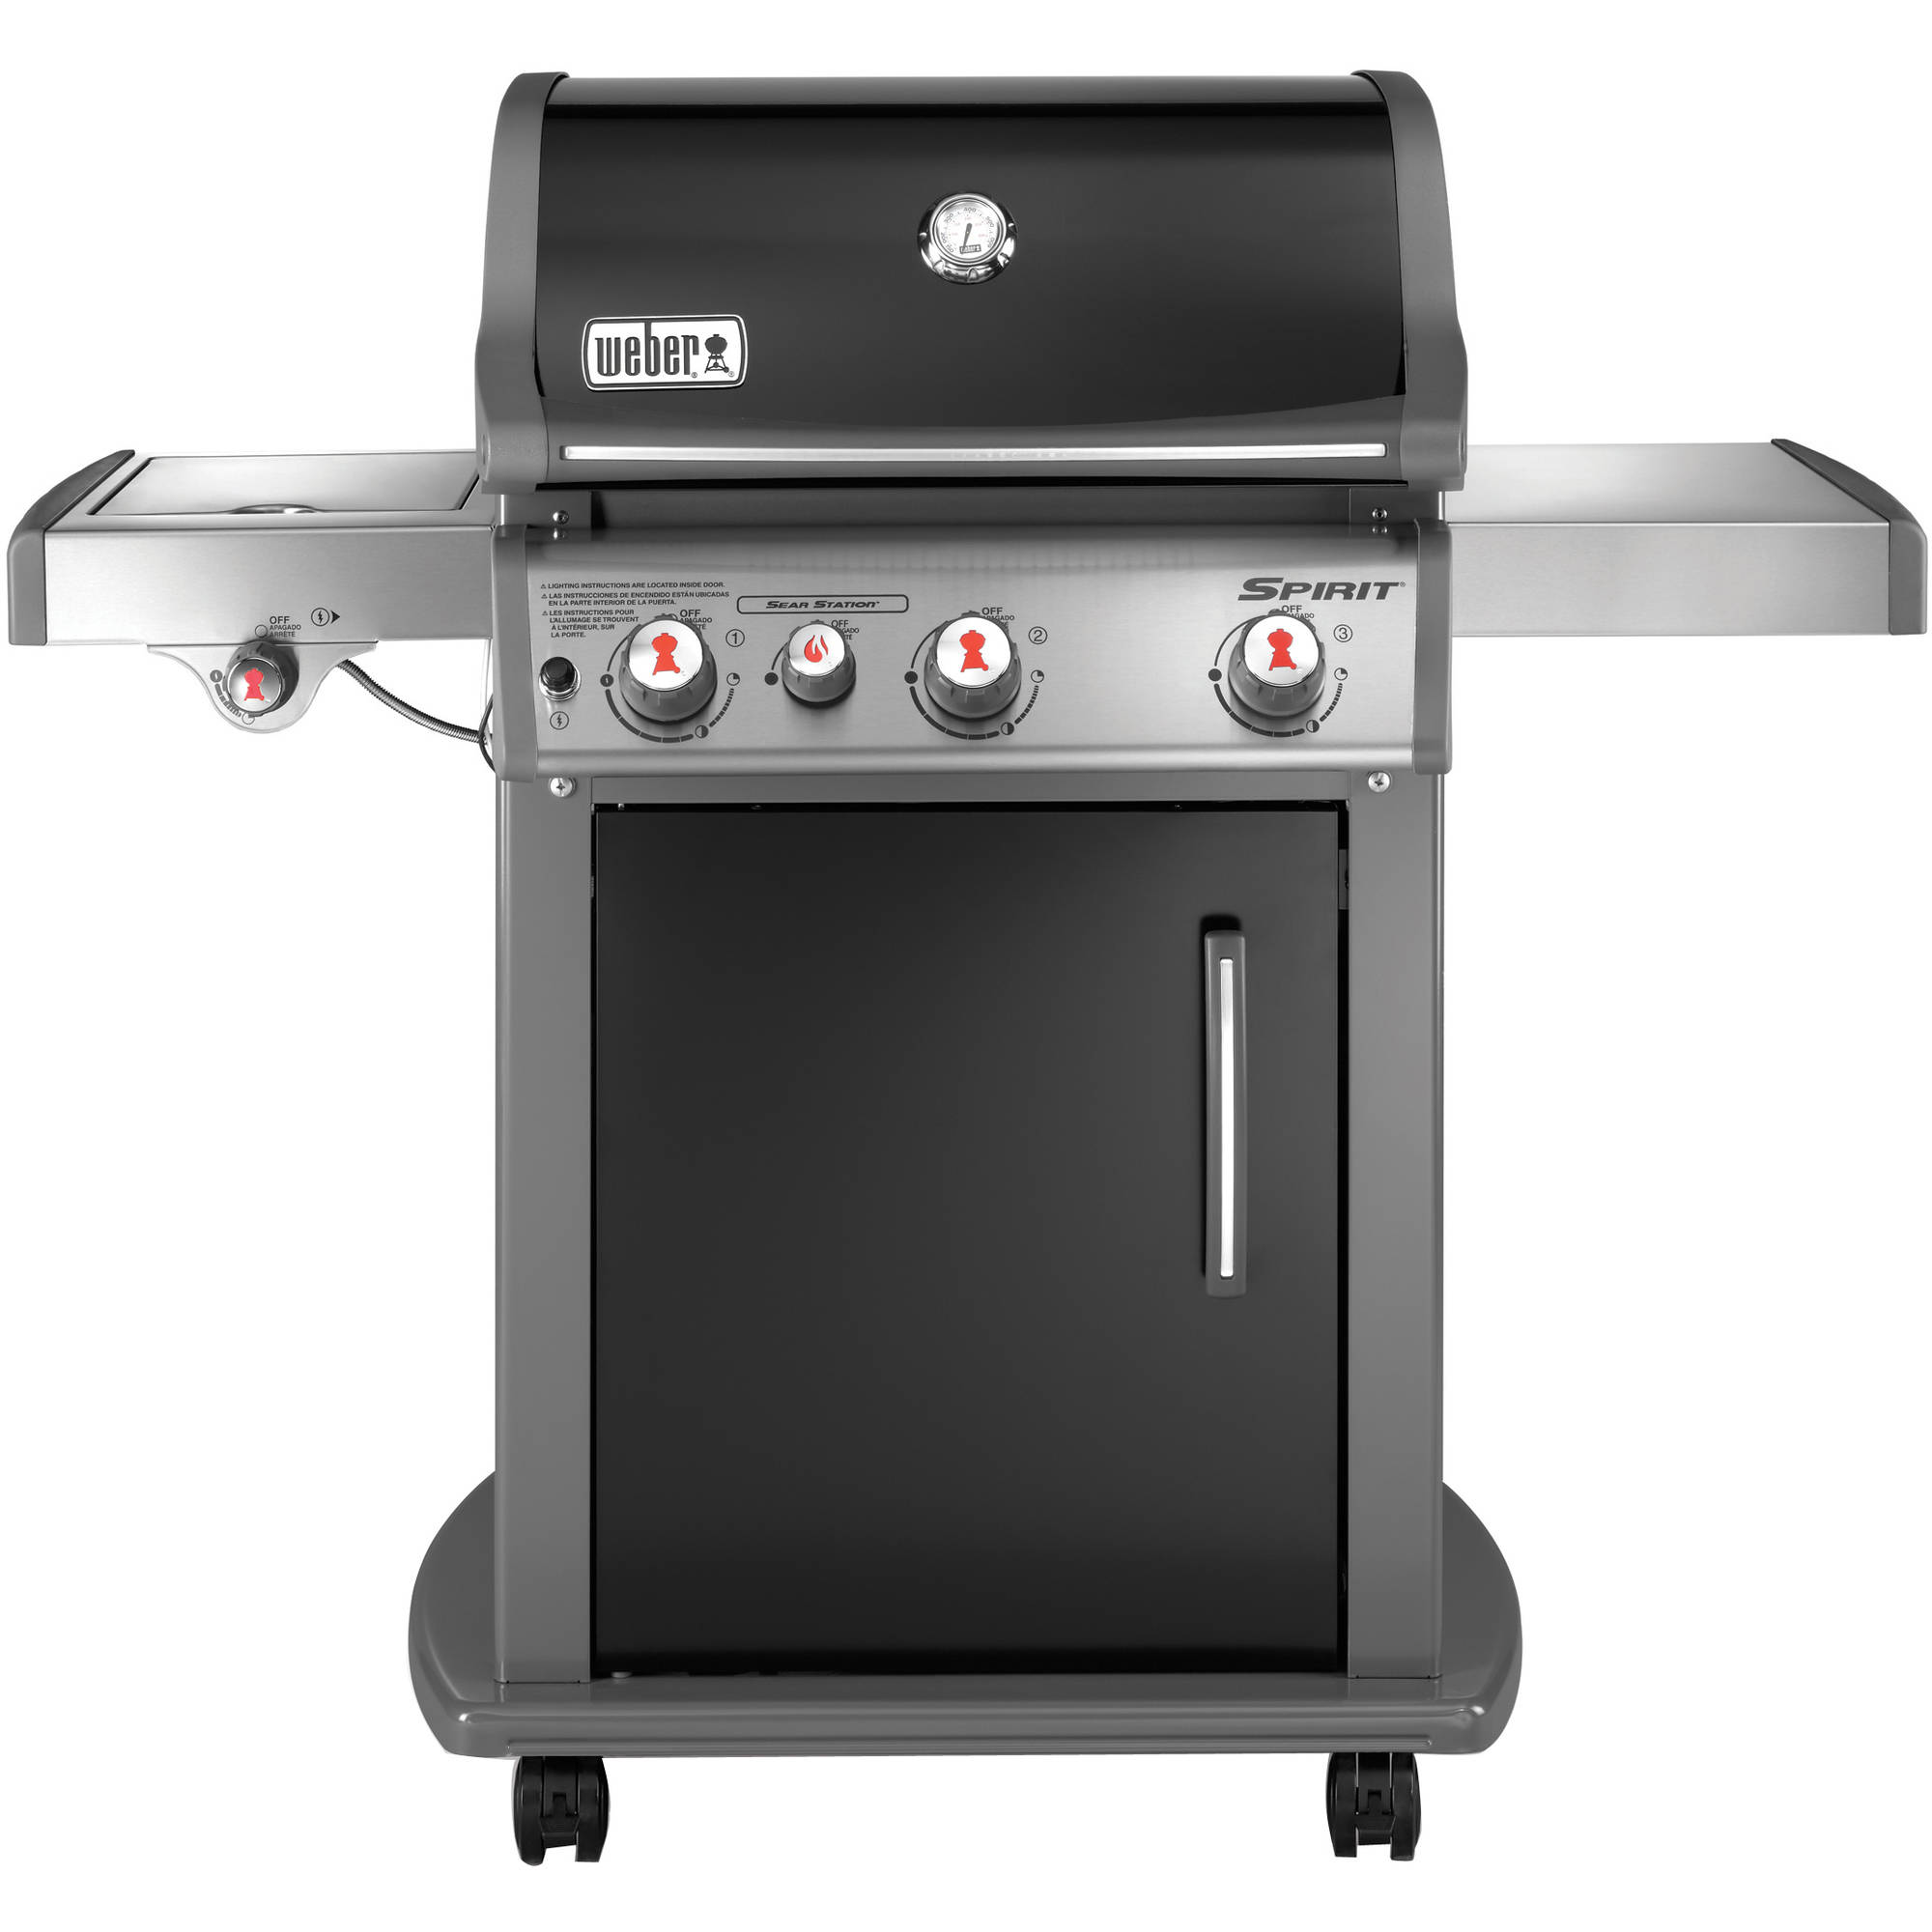 Weber Spirit E-330 LP Gas Grill, Black by Weber-stephen Products